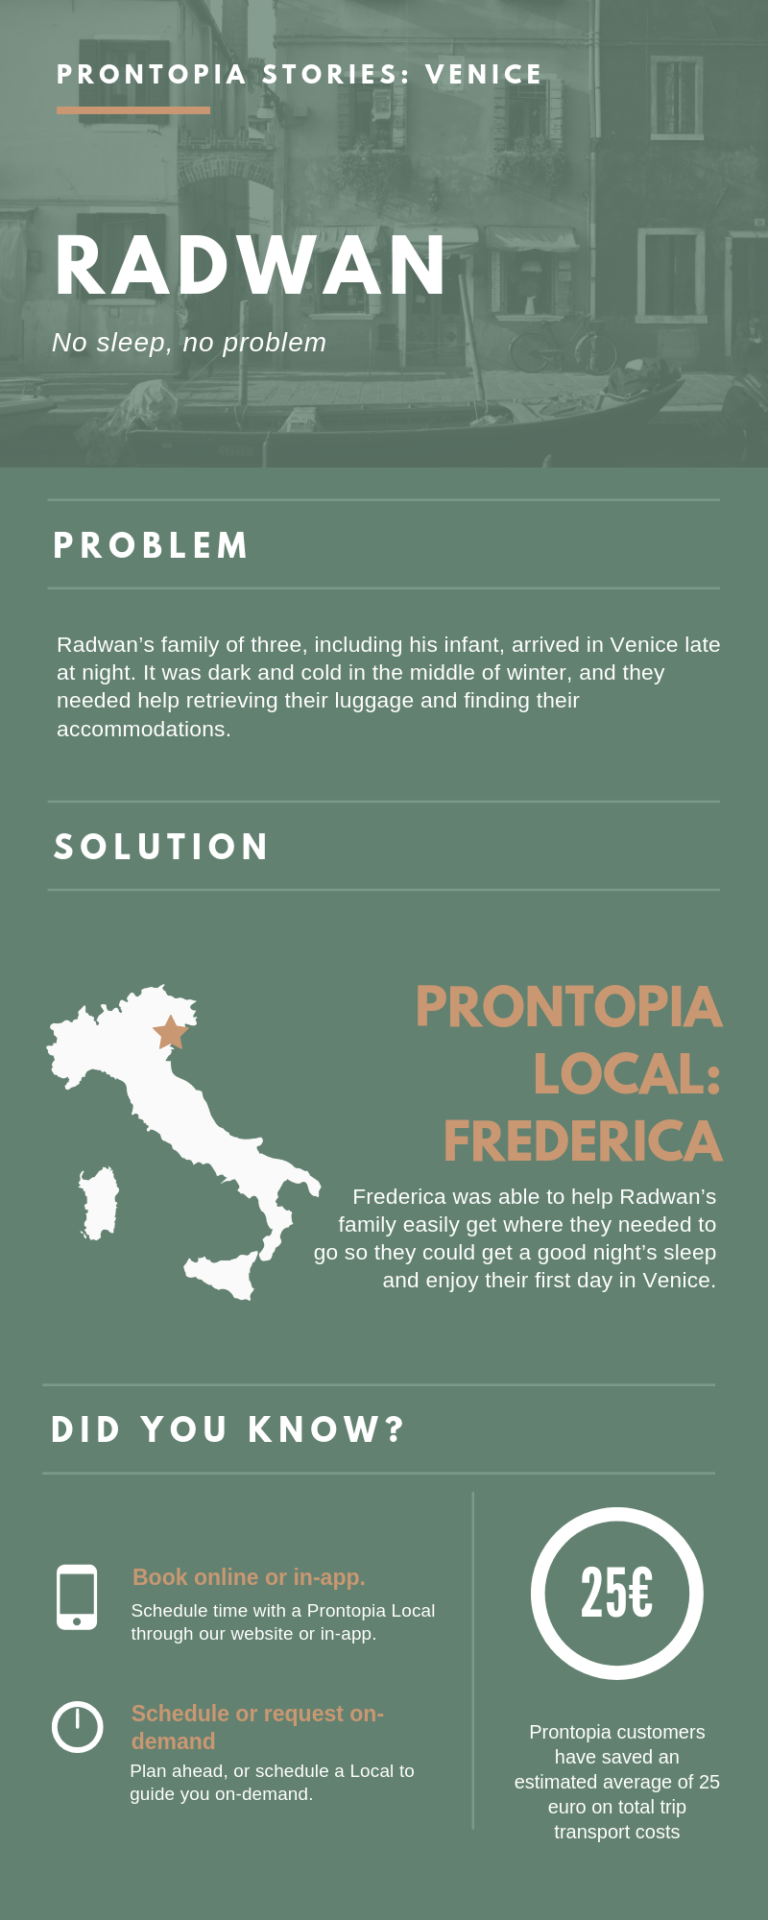 How to Use Prontopia in Venice? Radwans Story 0